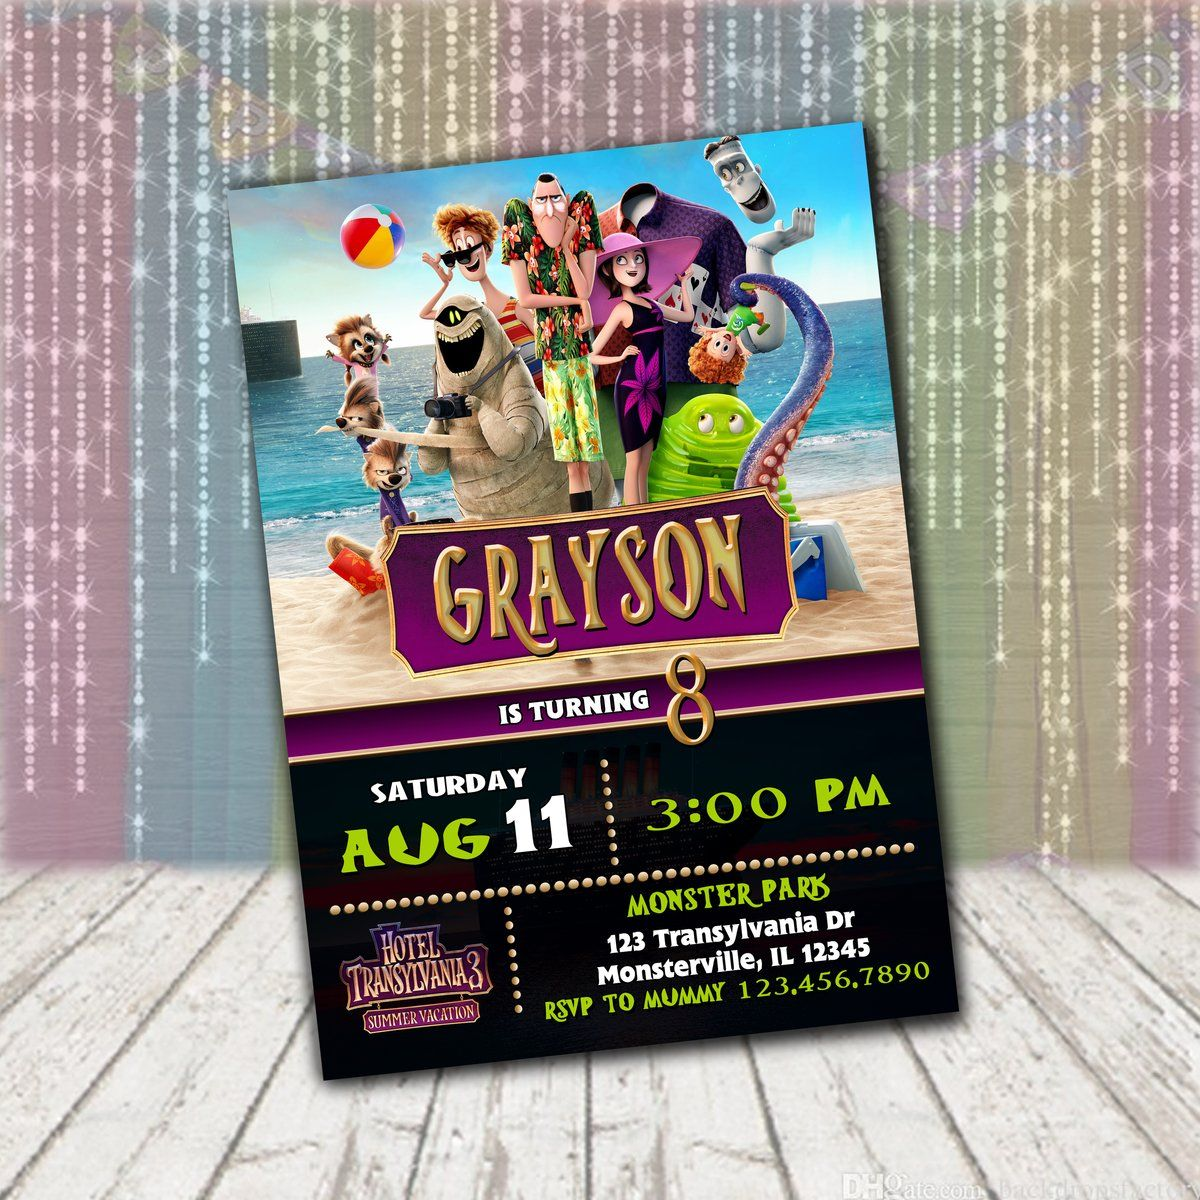 Personalized /& Custom Printed Hotel Transylvania Birthday Party Banner Poster